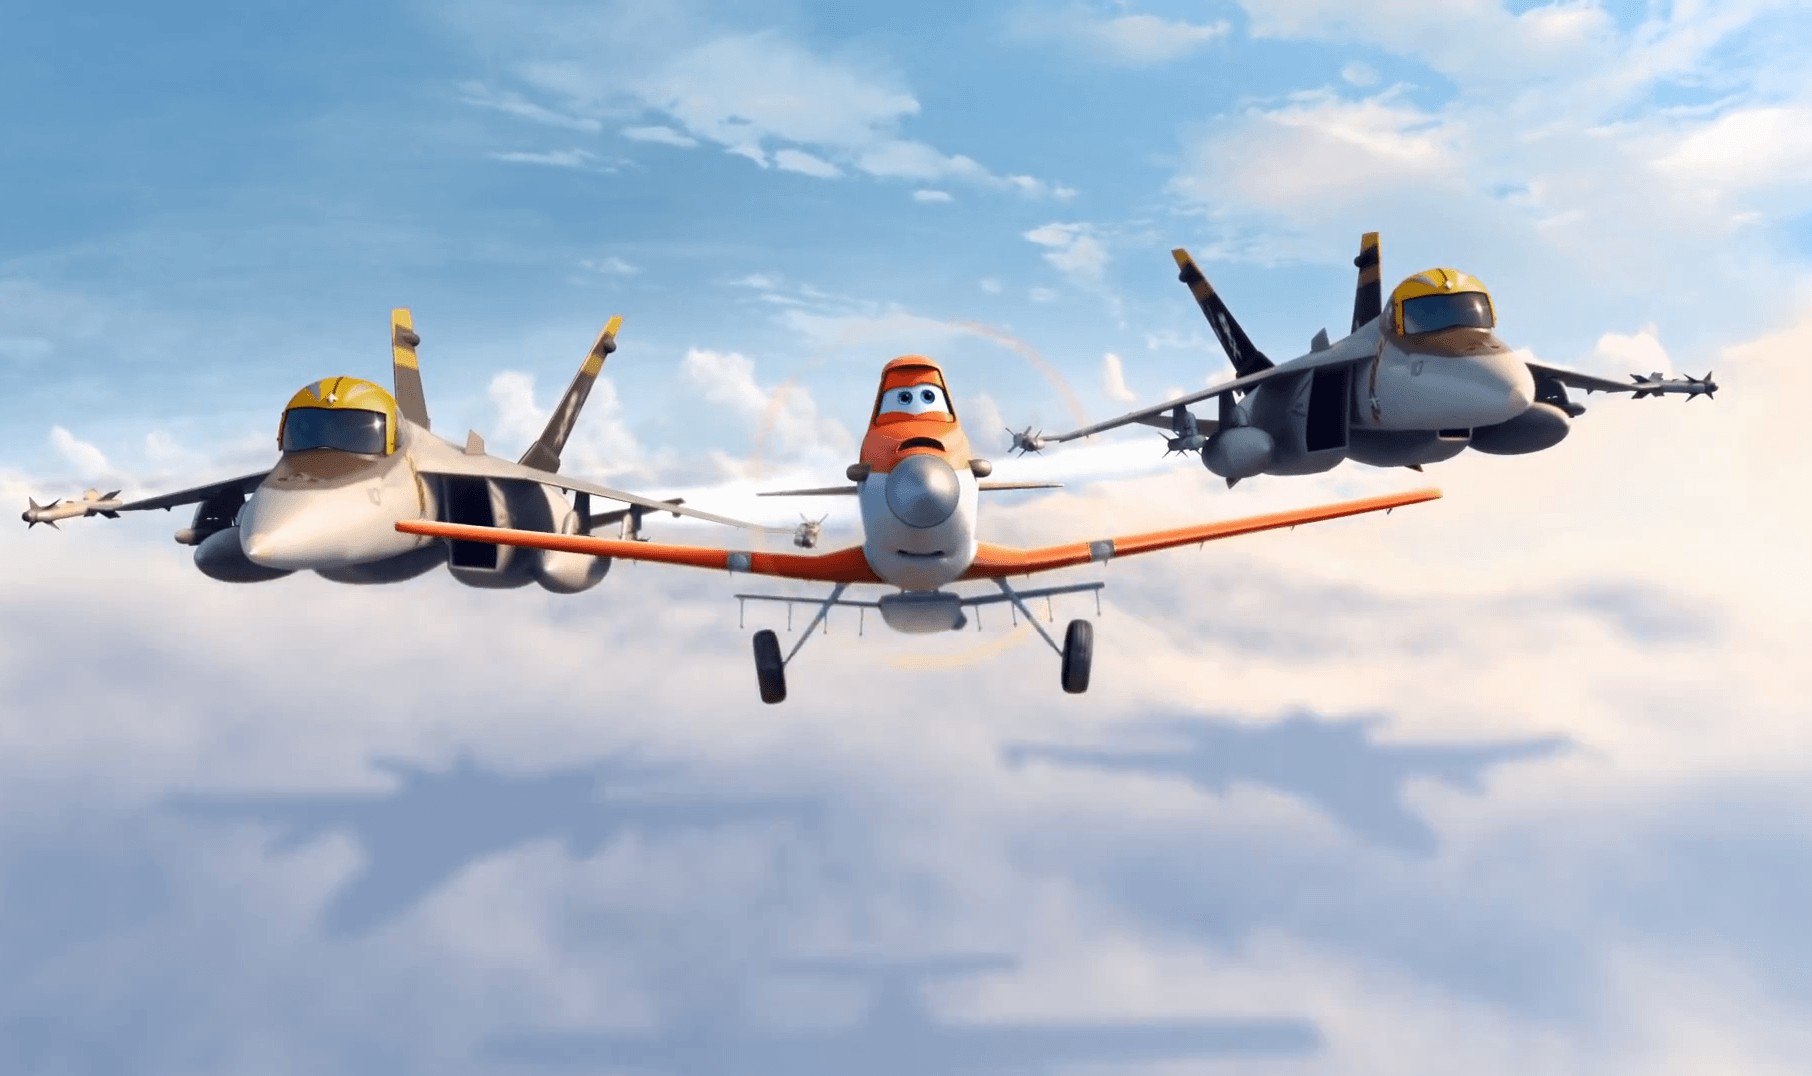 Planes : Disney flingue Pixar en plein vol